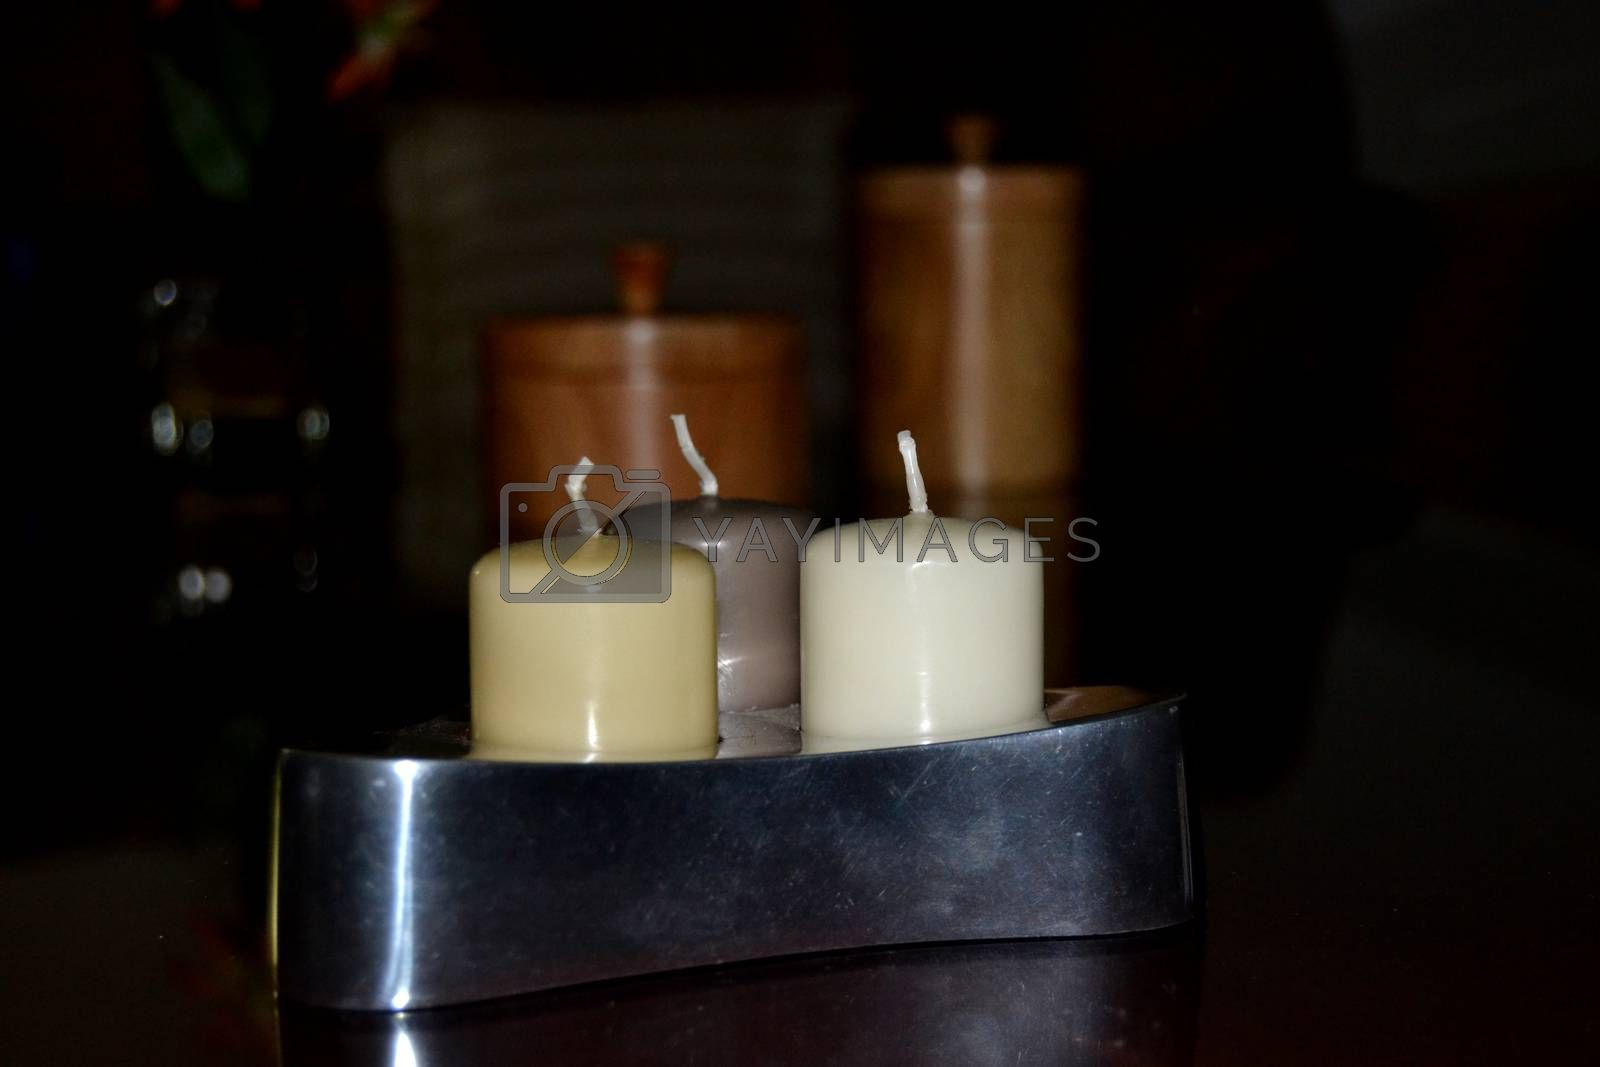 Silver candleholder containing three coloured candles in brown tones